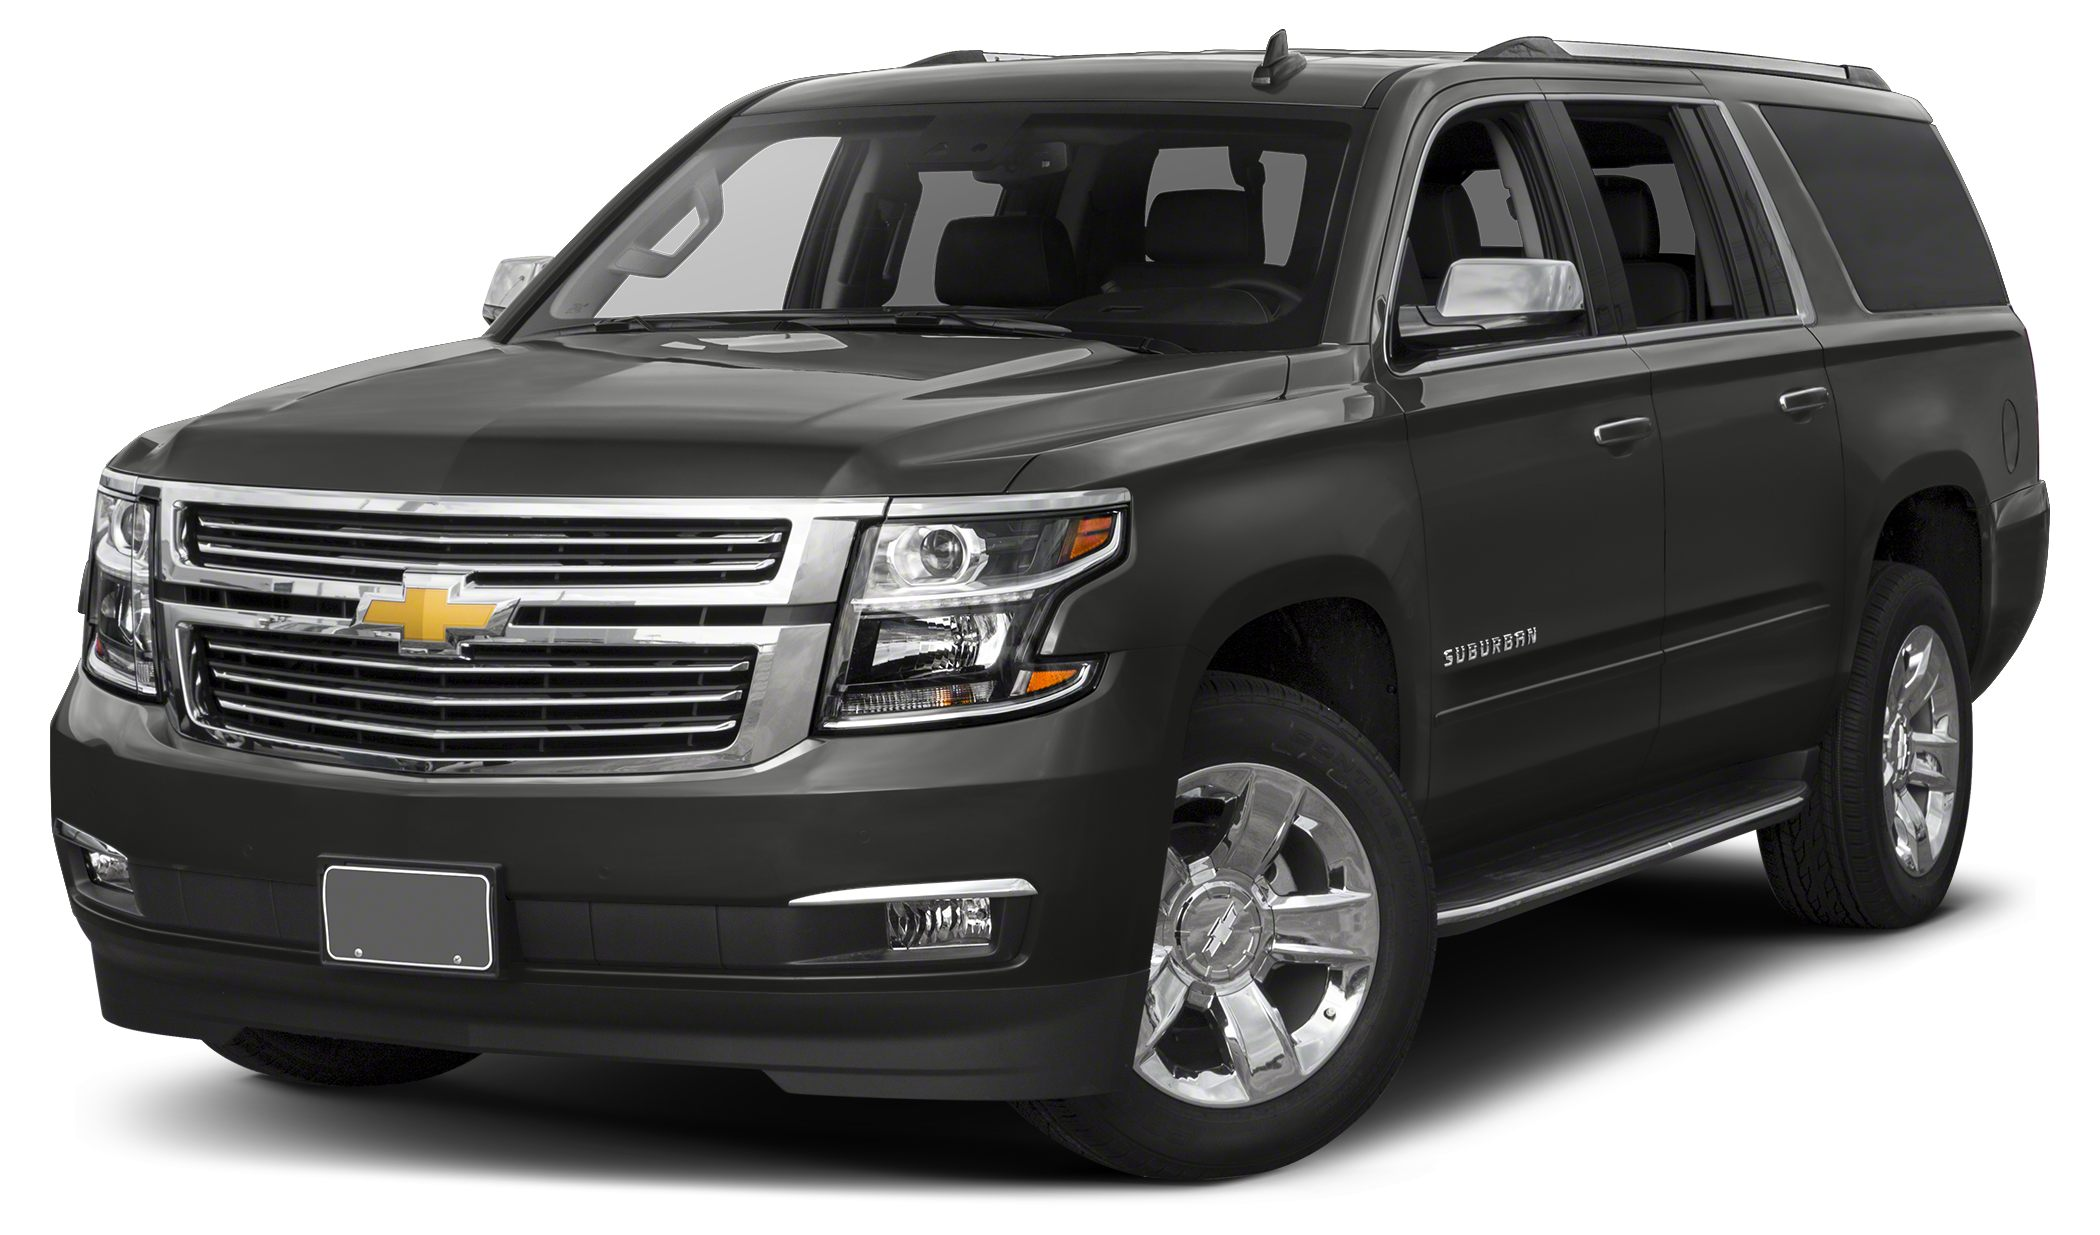 2017 Chevrolet Suburban Premier Prior Dealer Demo ABS brakes Compass Electronic Stability Cont